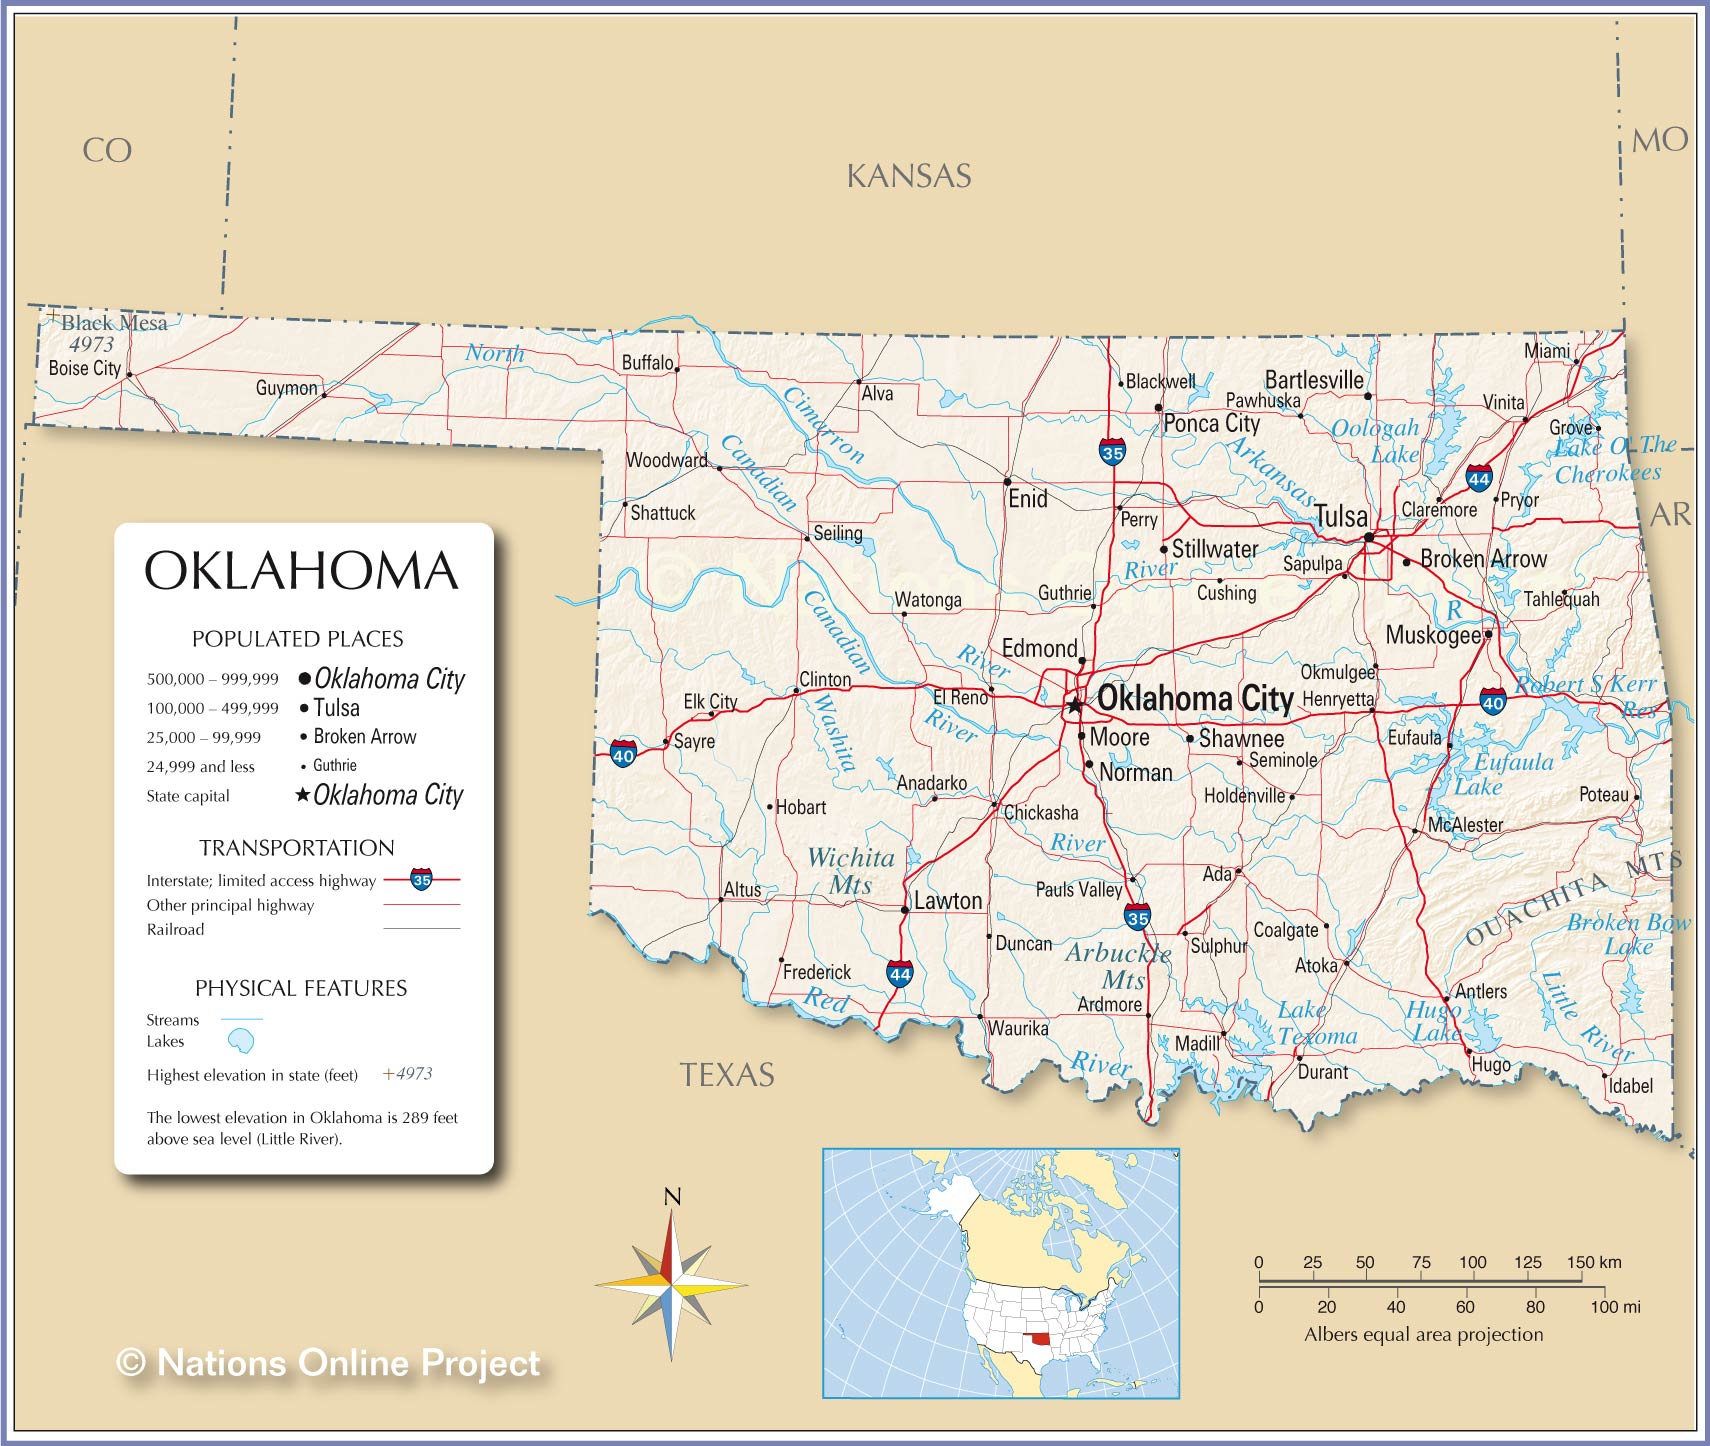 Reference Map Of Oklahoma USA Nations Online Project - Illinois on the map of usa